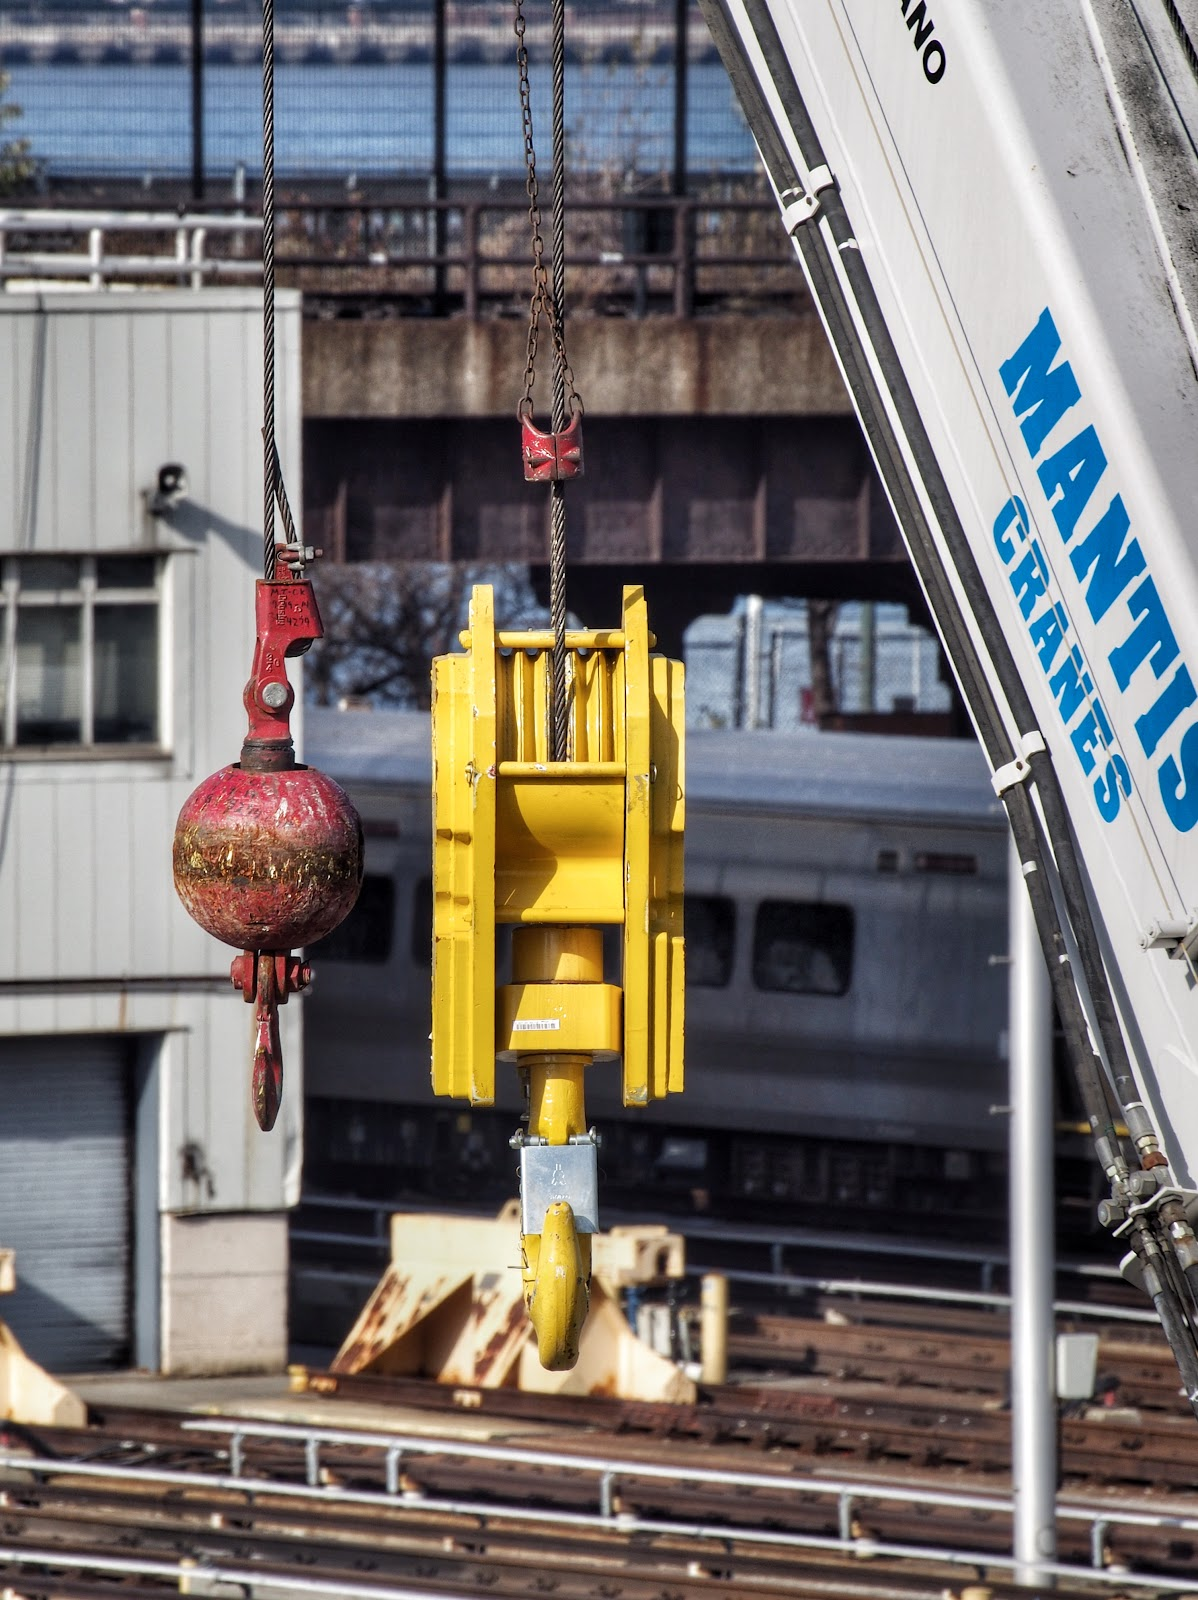 Hanging Out #crane  #twohooks #hudsonyard #mantiscrane #nyc #construction #LIRR #trains 2014